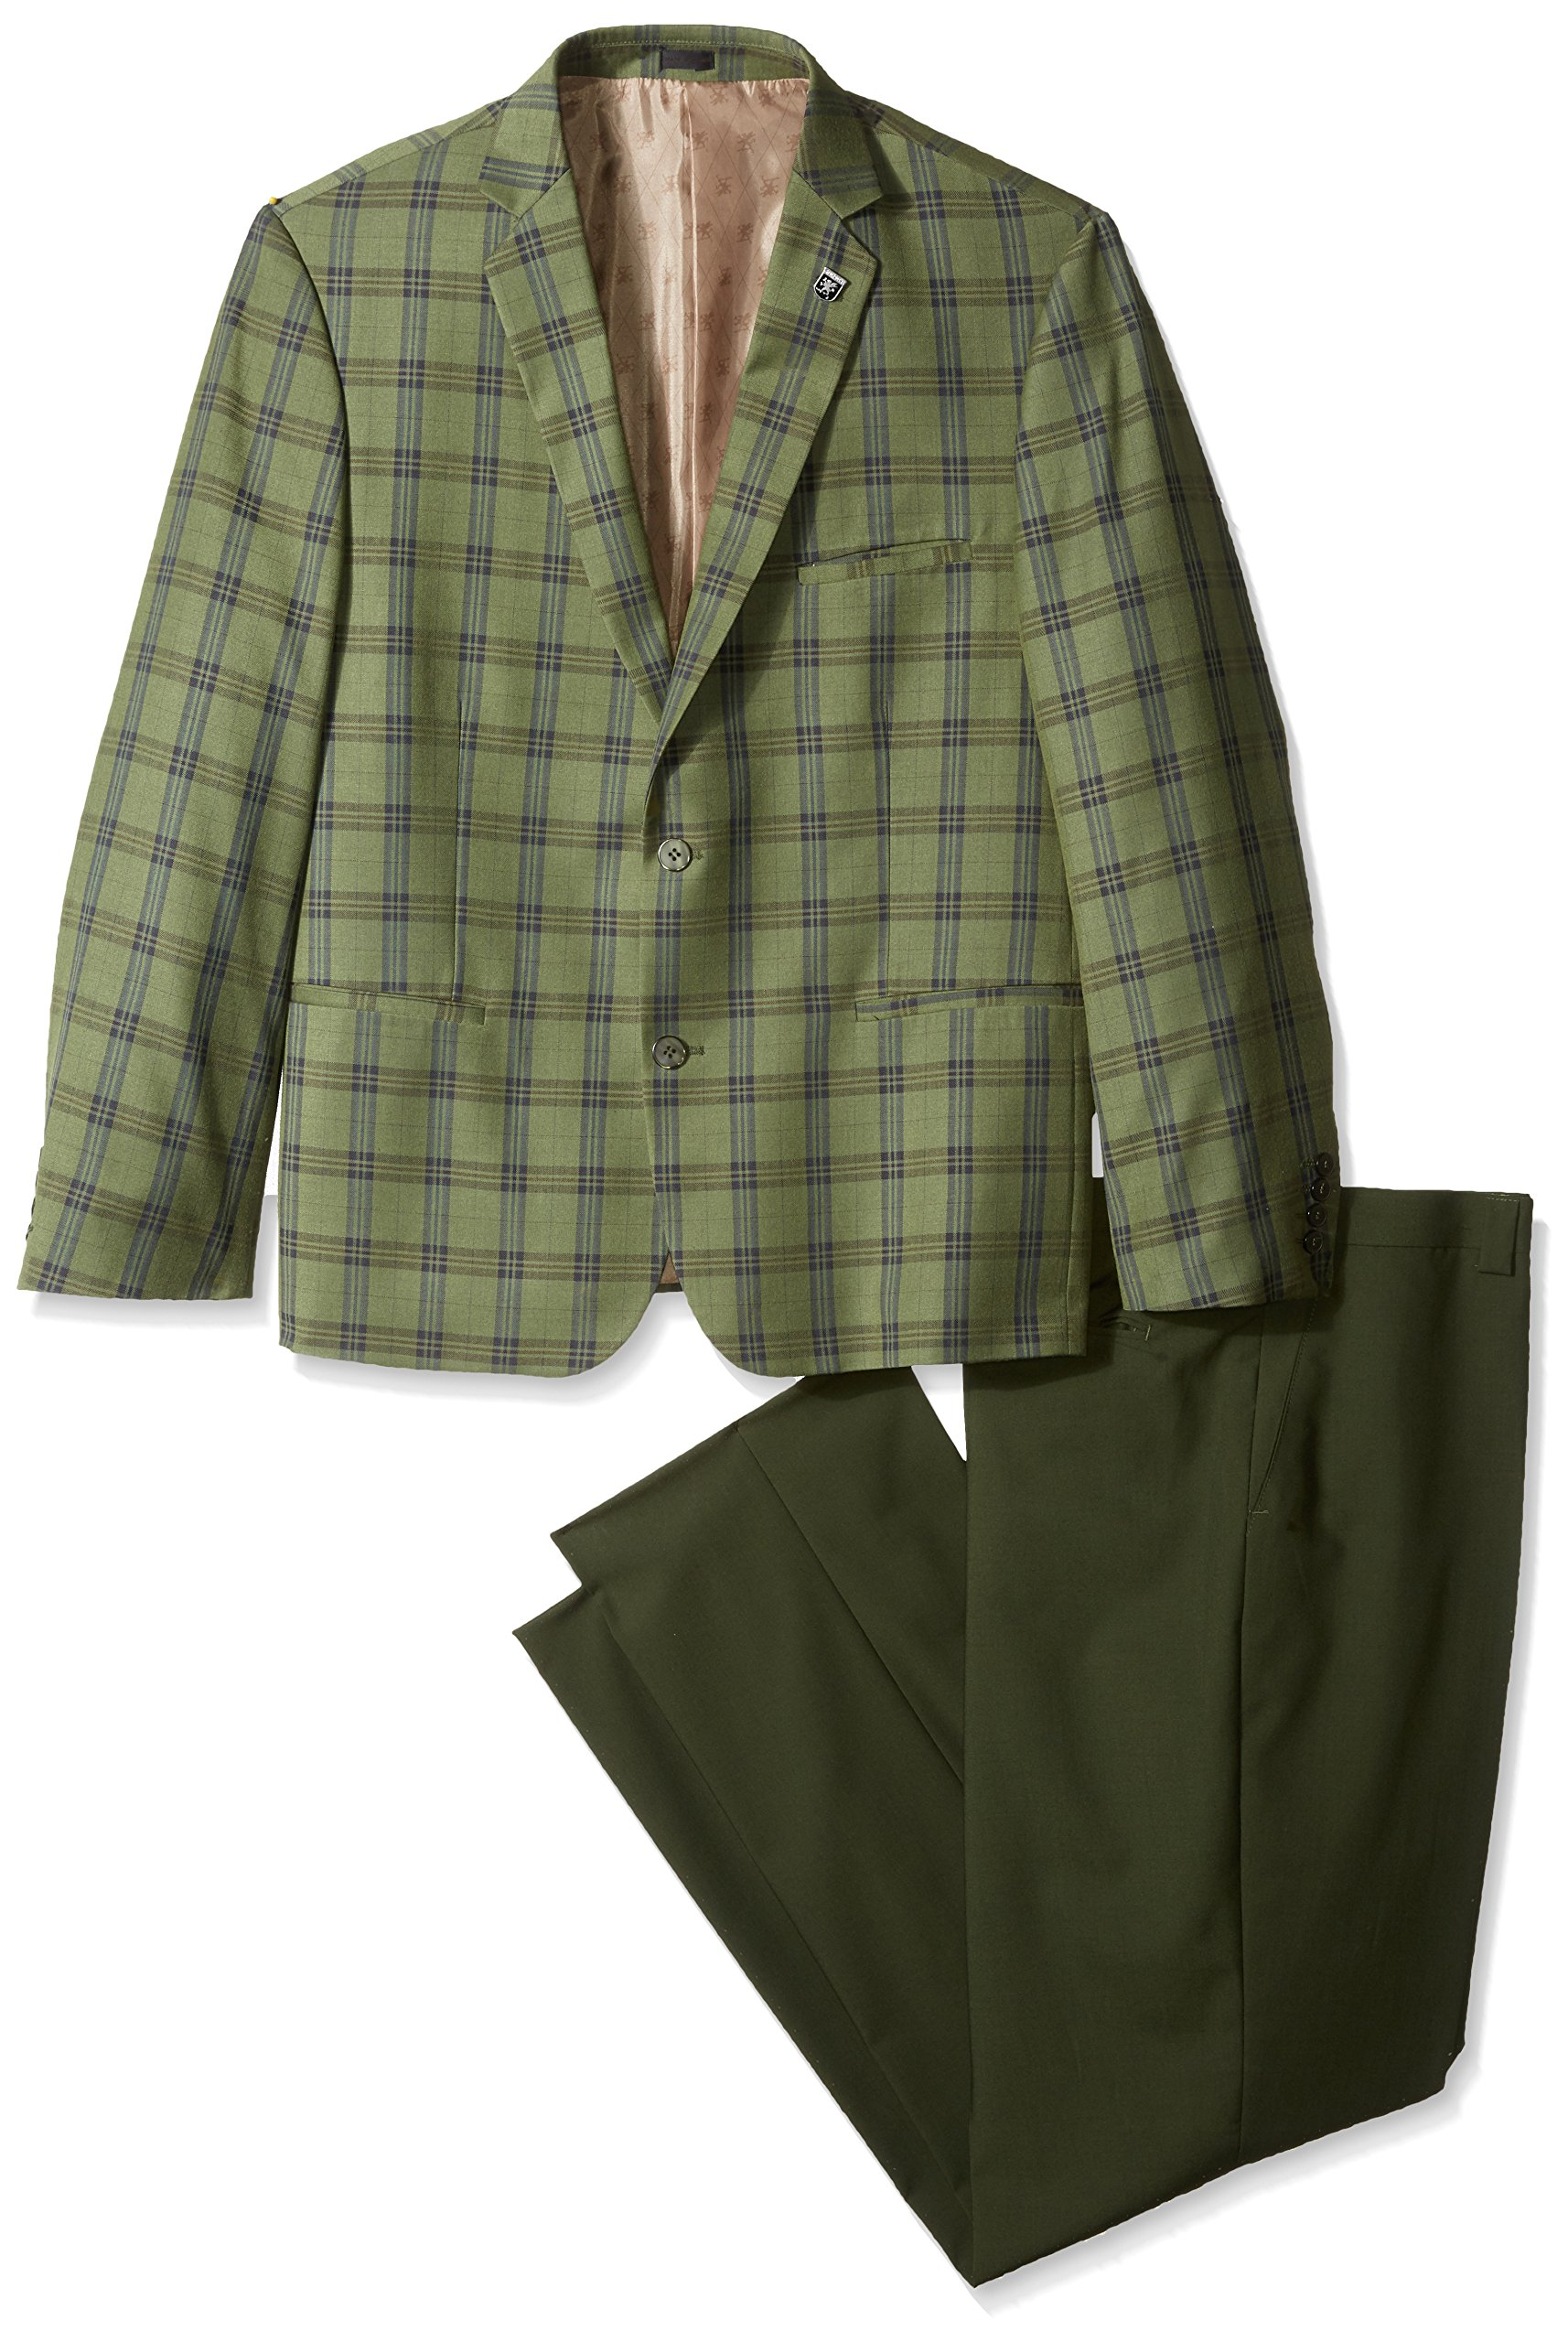 Stacy Adams Men's Big and Tall Brandi Duo Modern Fit Suit, Green, 54 Long